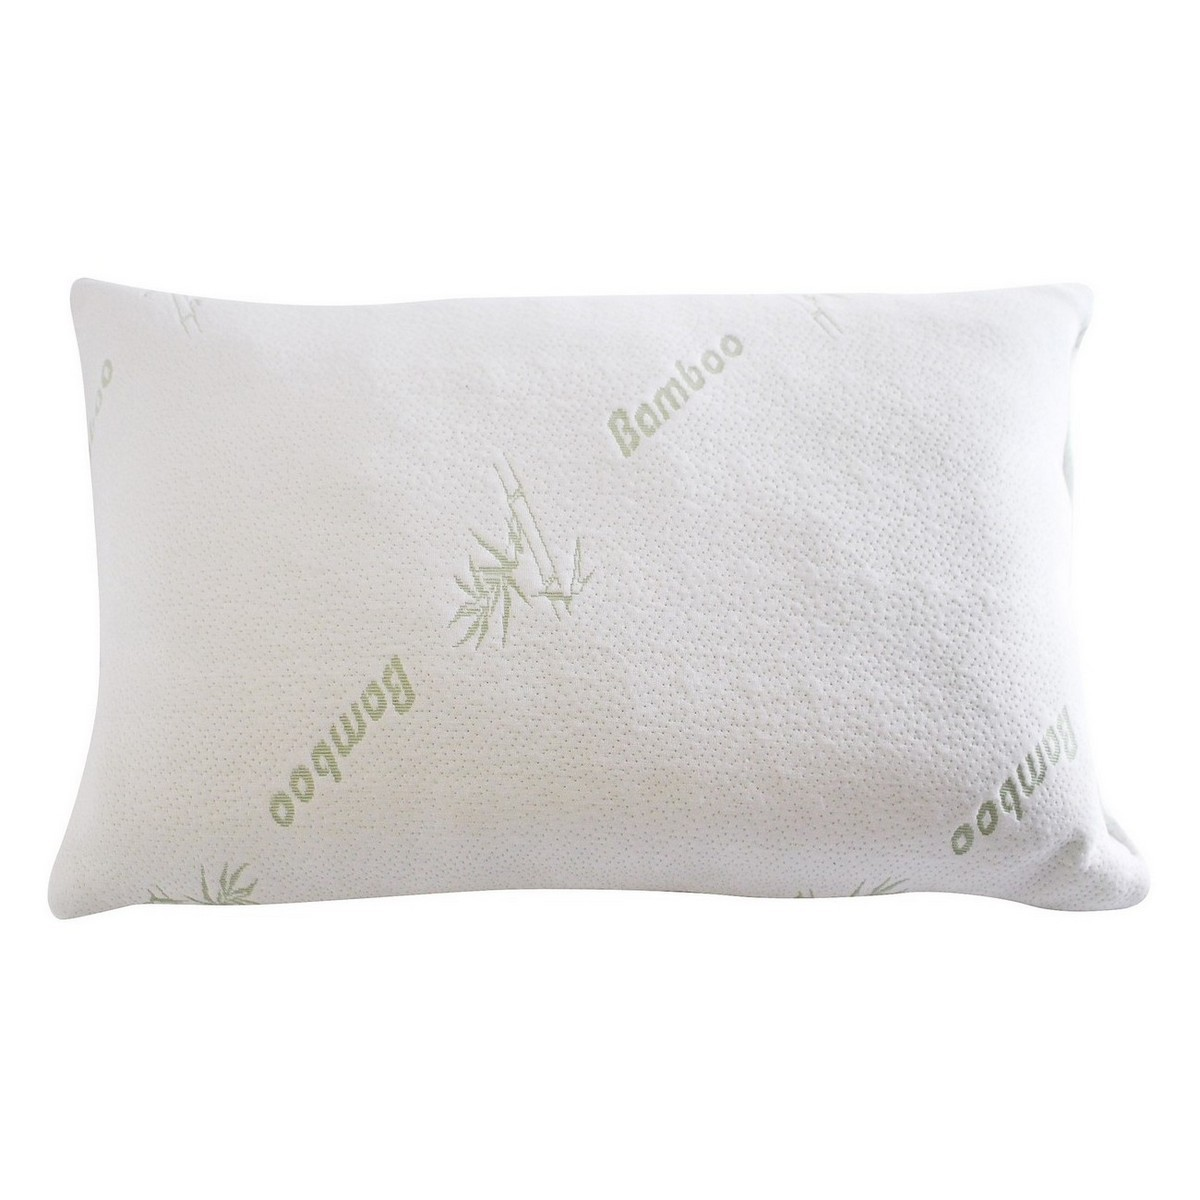 Odyssey Living Charcoal Infused Crumbed Memory Foam Pillow